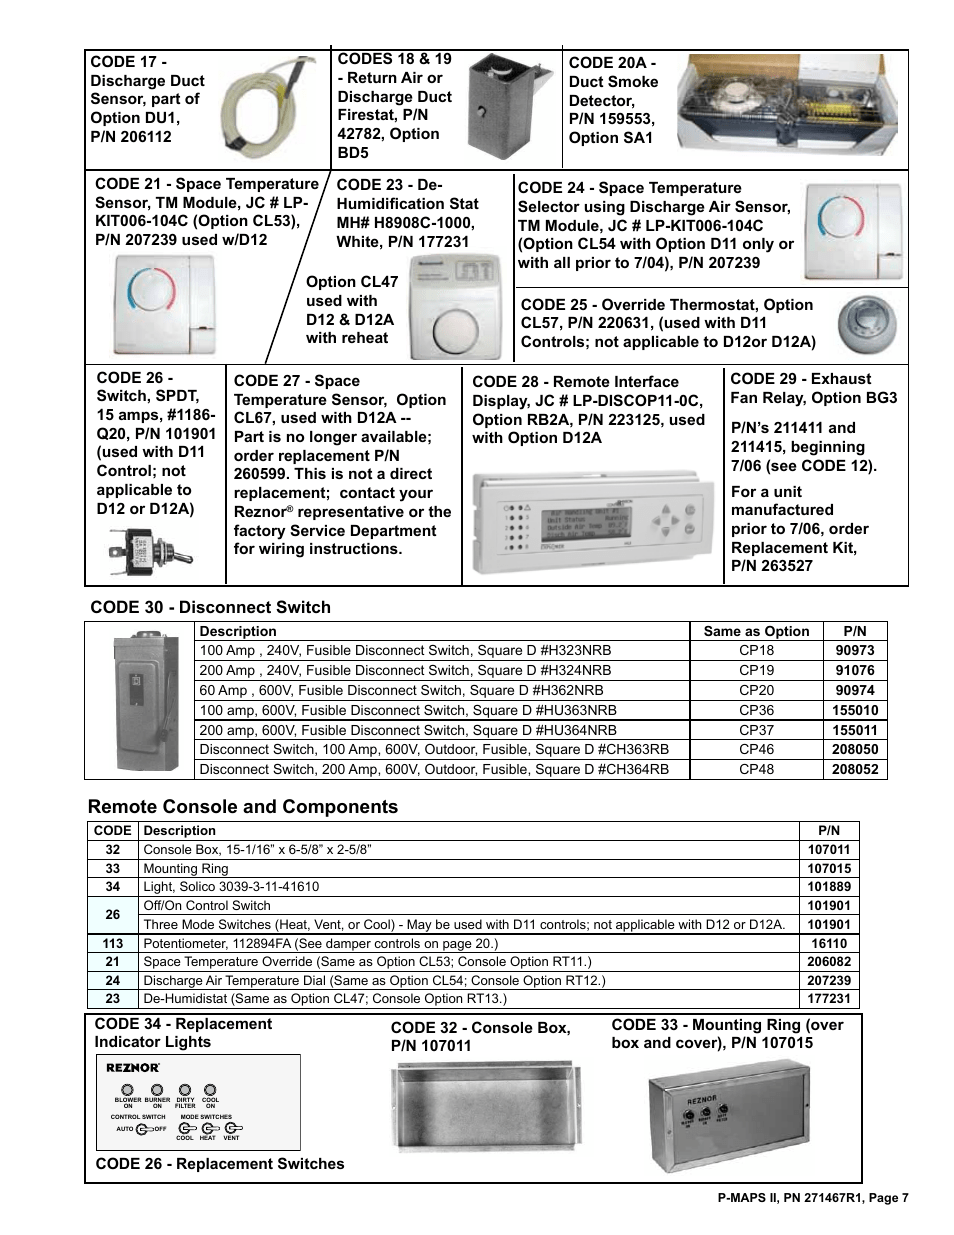 hight resolution of replacement indicator lights 7 remote console 7 remote console and components reznor mapsii series parts manuals user manual page 8 29